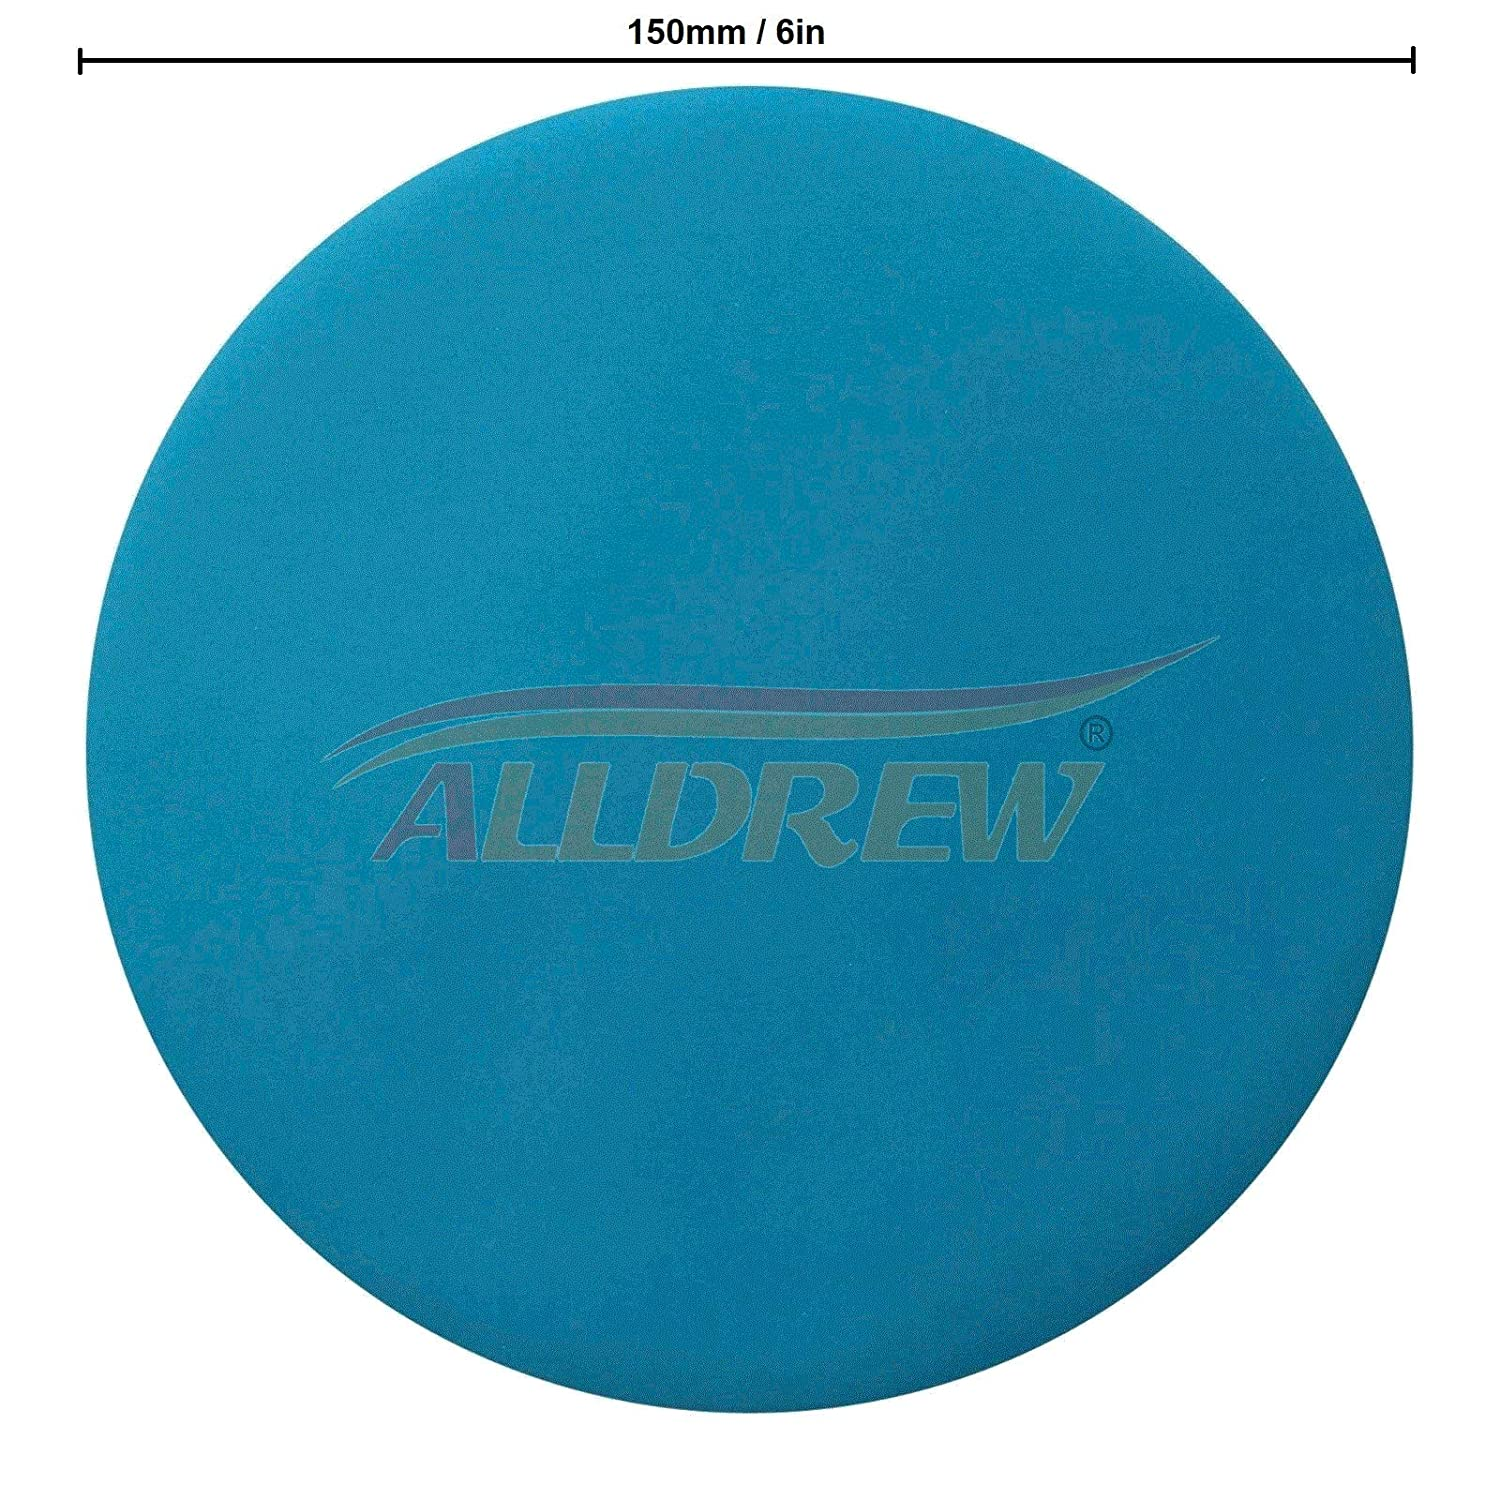 150mm Wet and Dry Sanding Discs 6in Hook and Loop Plain Waterproof 6 Sandpaper 40-3000 Grit 50, Grit 240